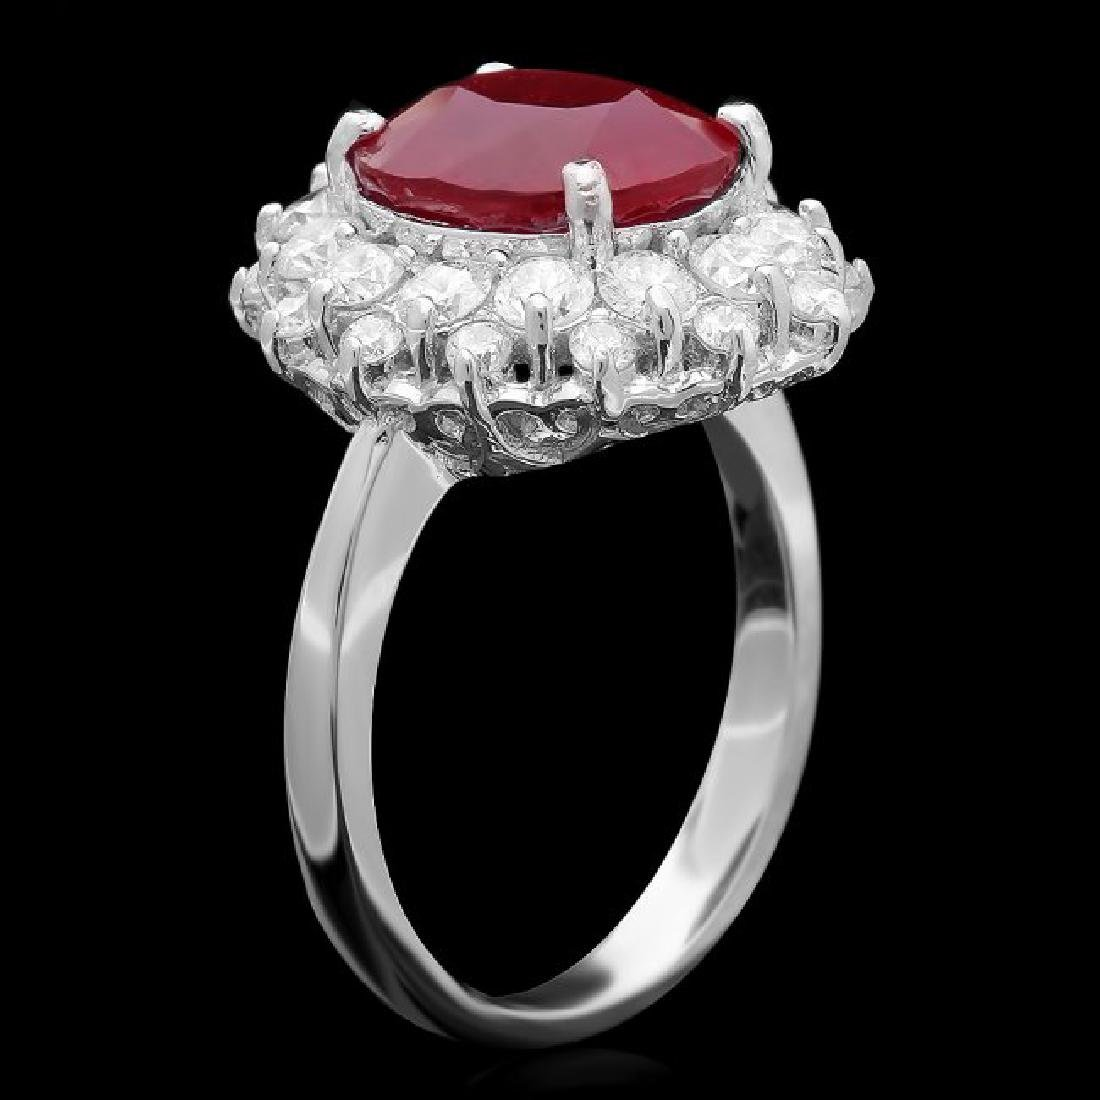 14k White Gold 6.50ct Ruby 1.50ct Diamond Ring - 3